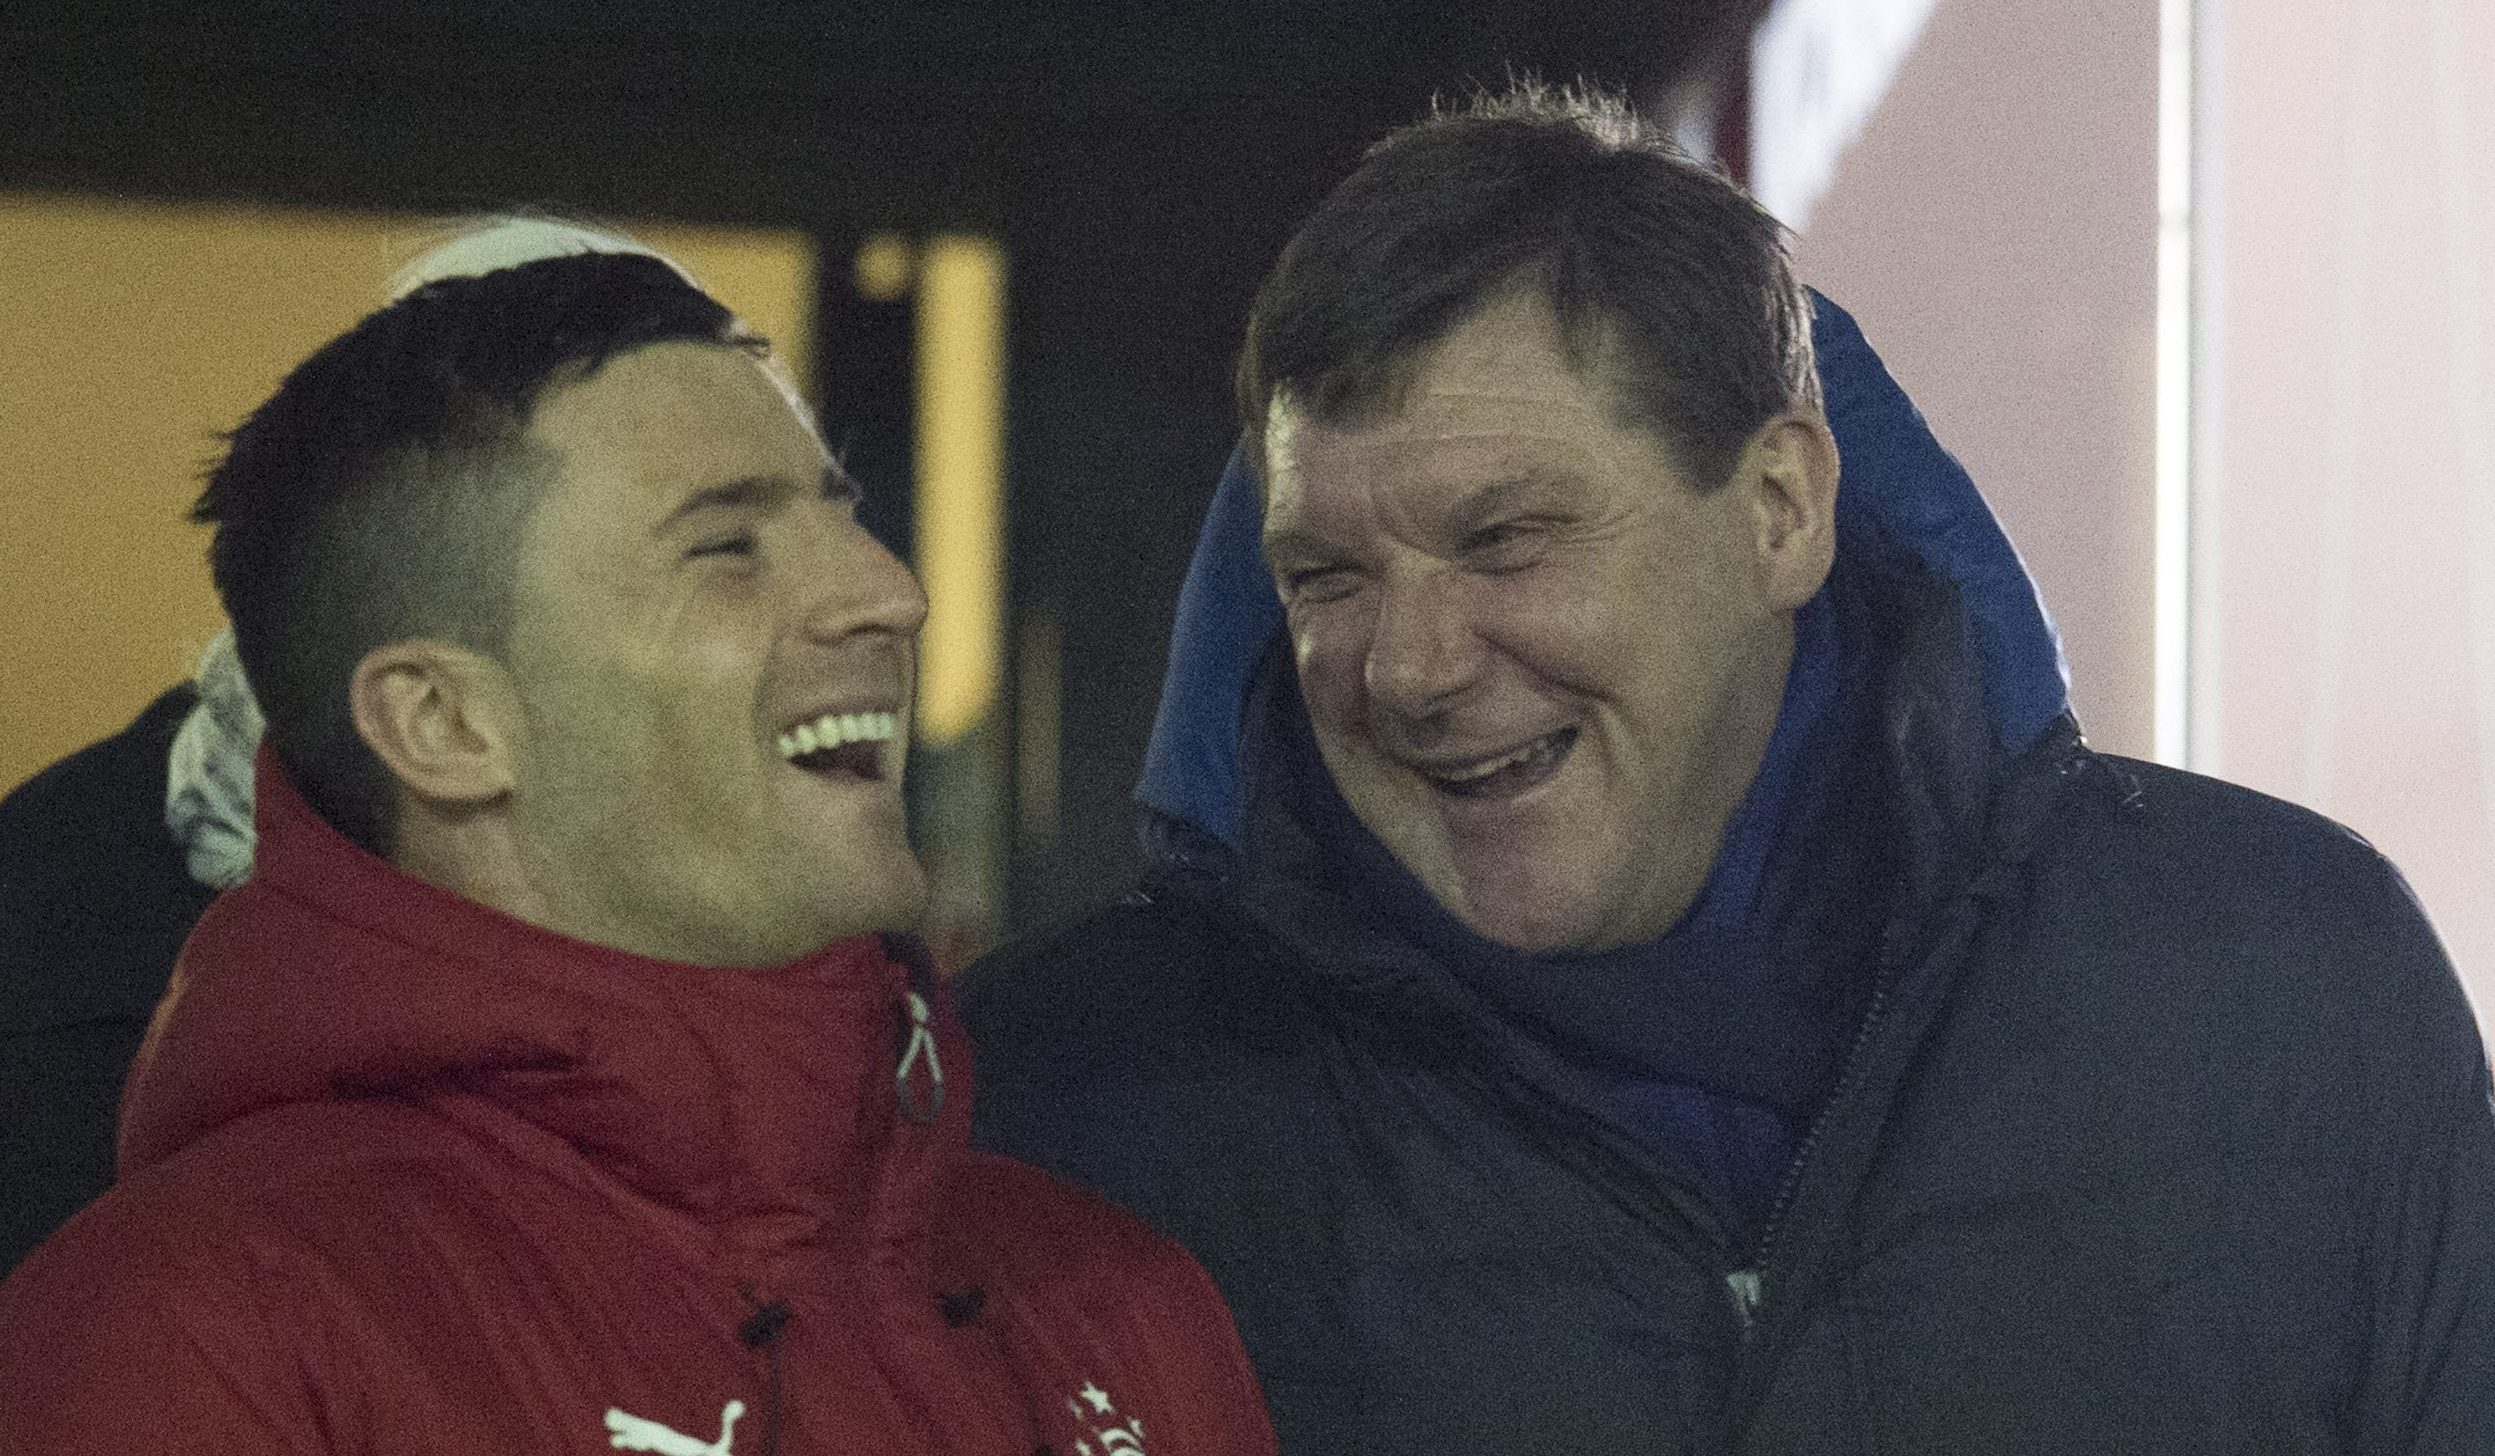 Will Michael O'Halloran and Tommy Wright be reunited at McDiarmid Park?